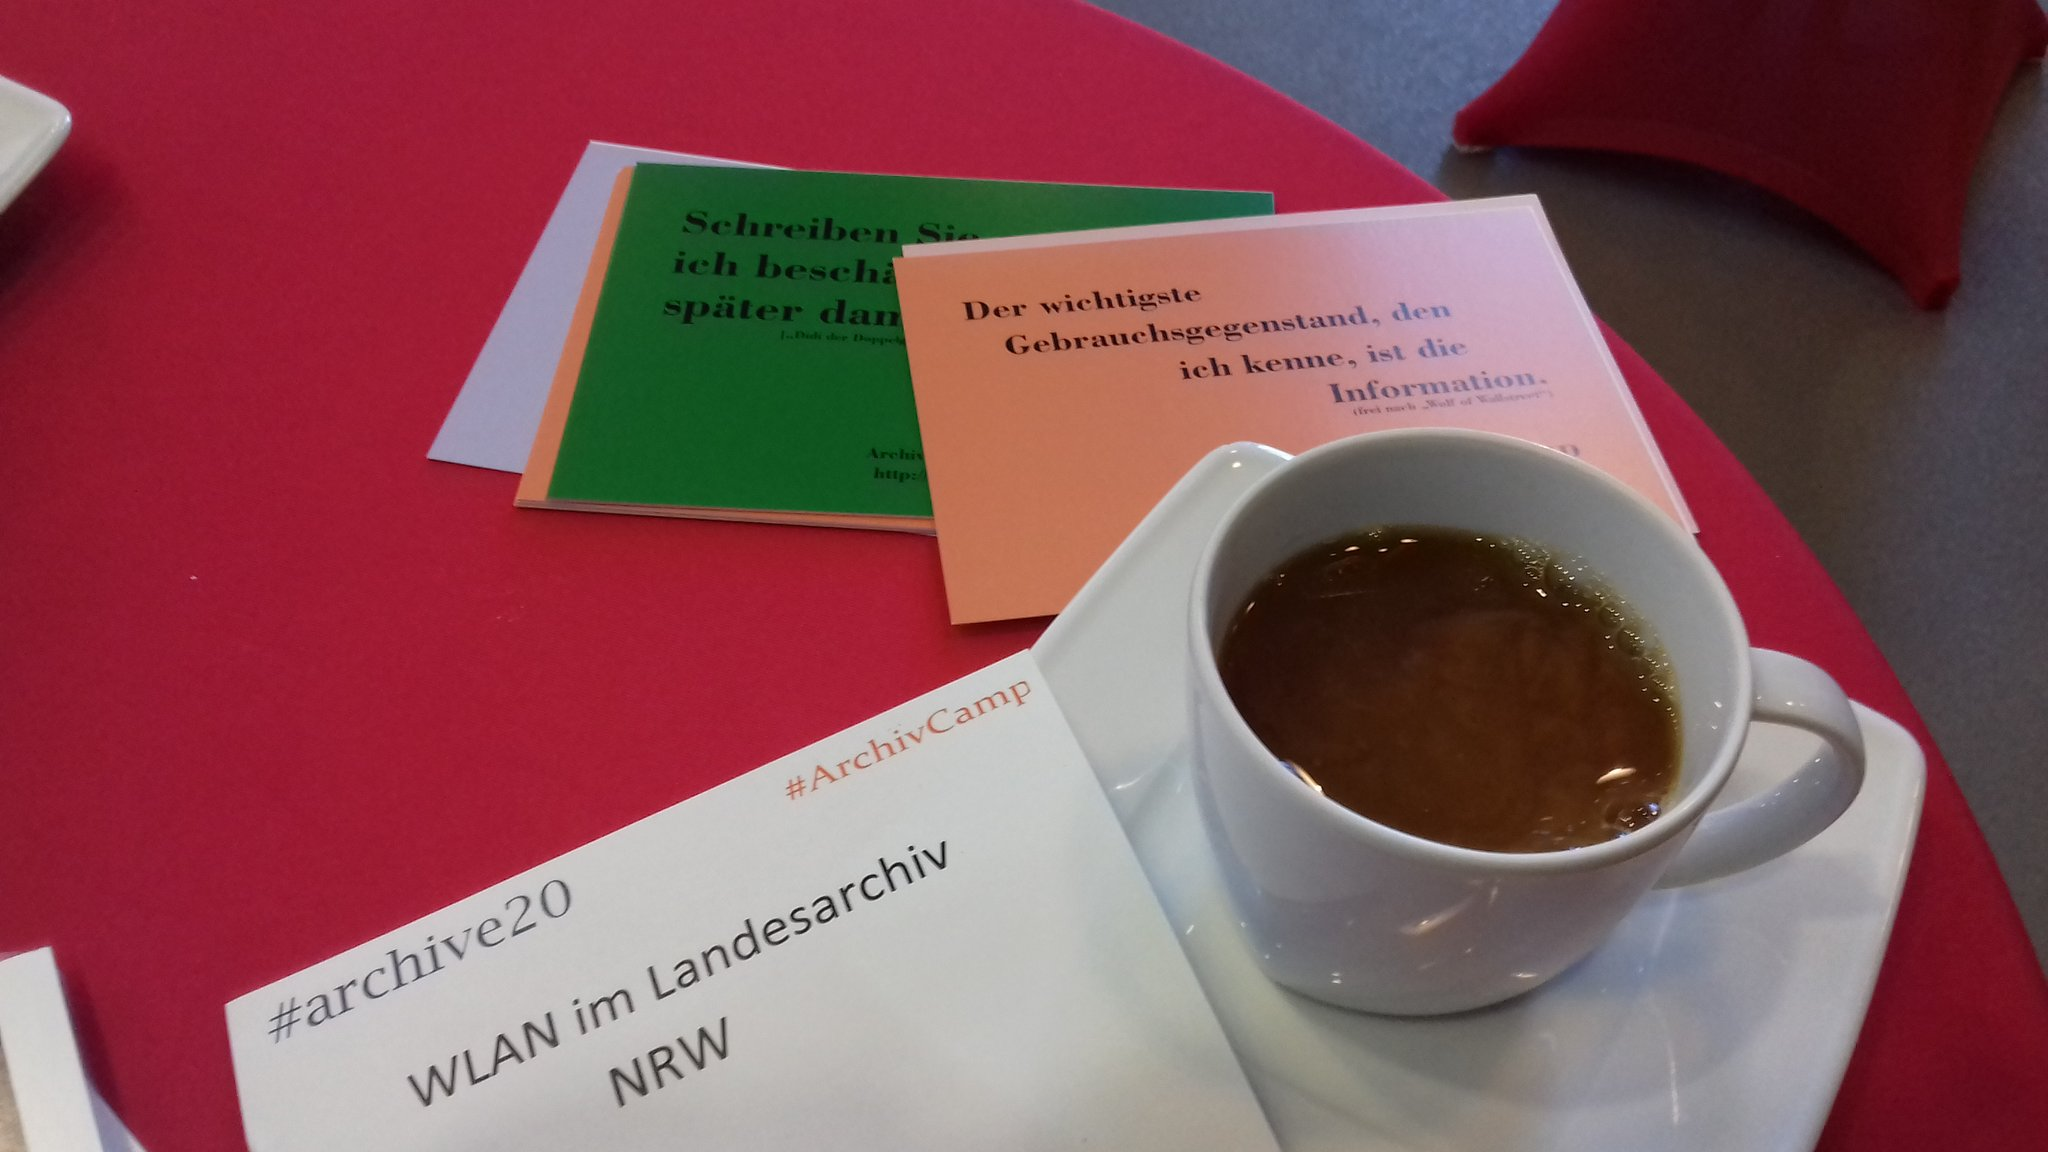 Der obligatorische Kaffeetweet. #archive20 #archivcamp https://t.co/iMHJqqJKkl